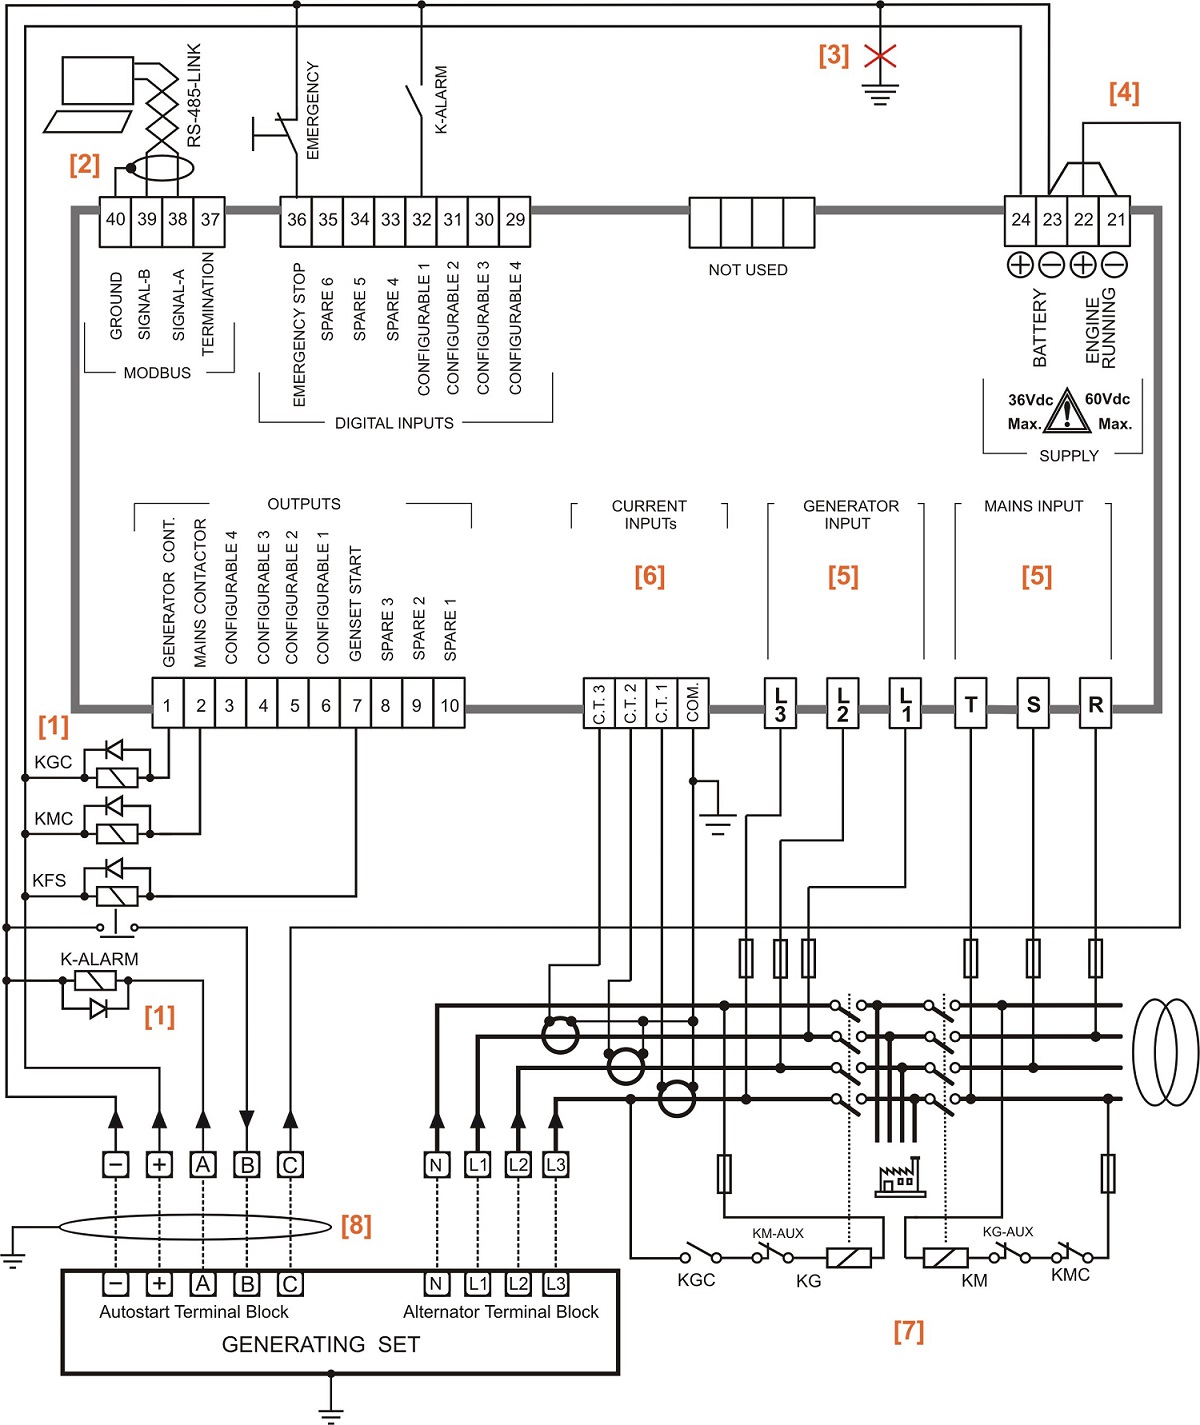 hight resolution of be28 automatic transfer switch controller connections automatic transfer switch circuit diagram genset controller ats panel for